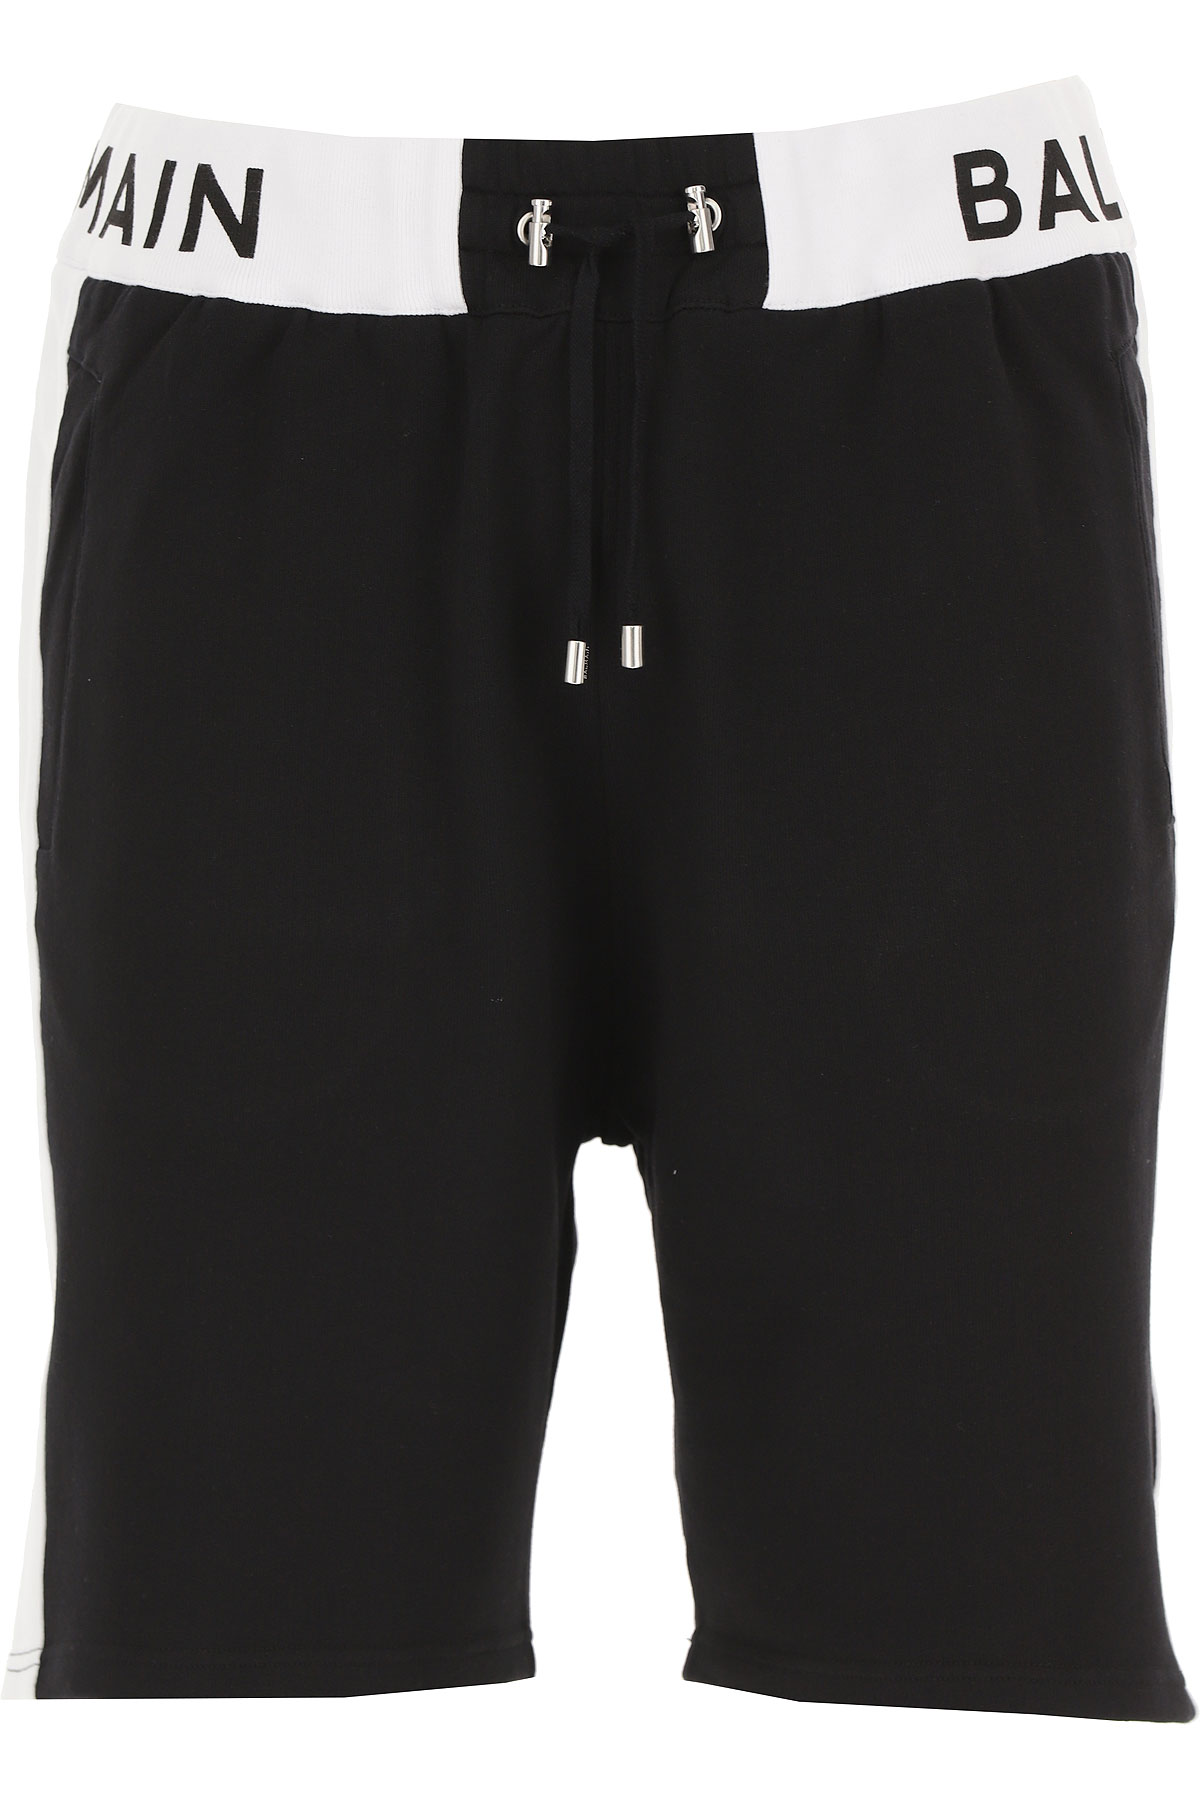 Balmain Shorts for Men On Sale, Black, Cotton, 2019, 30 36